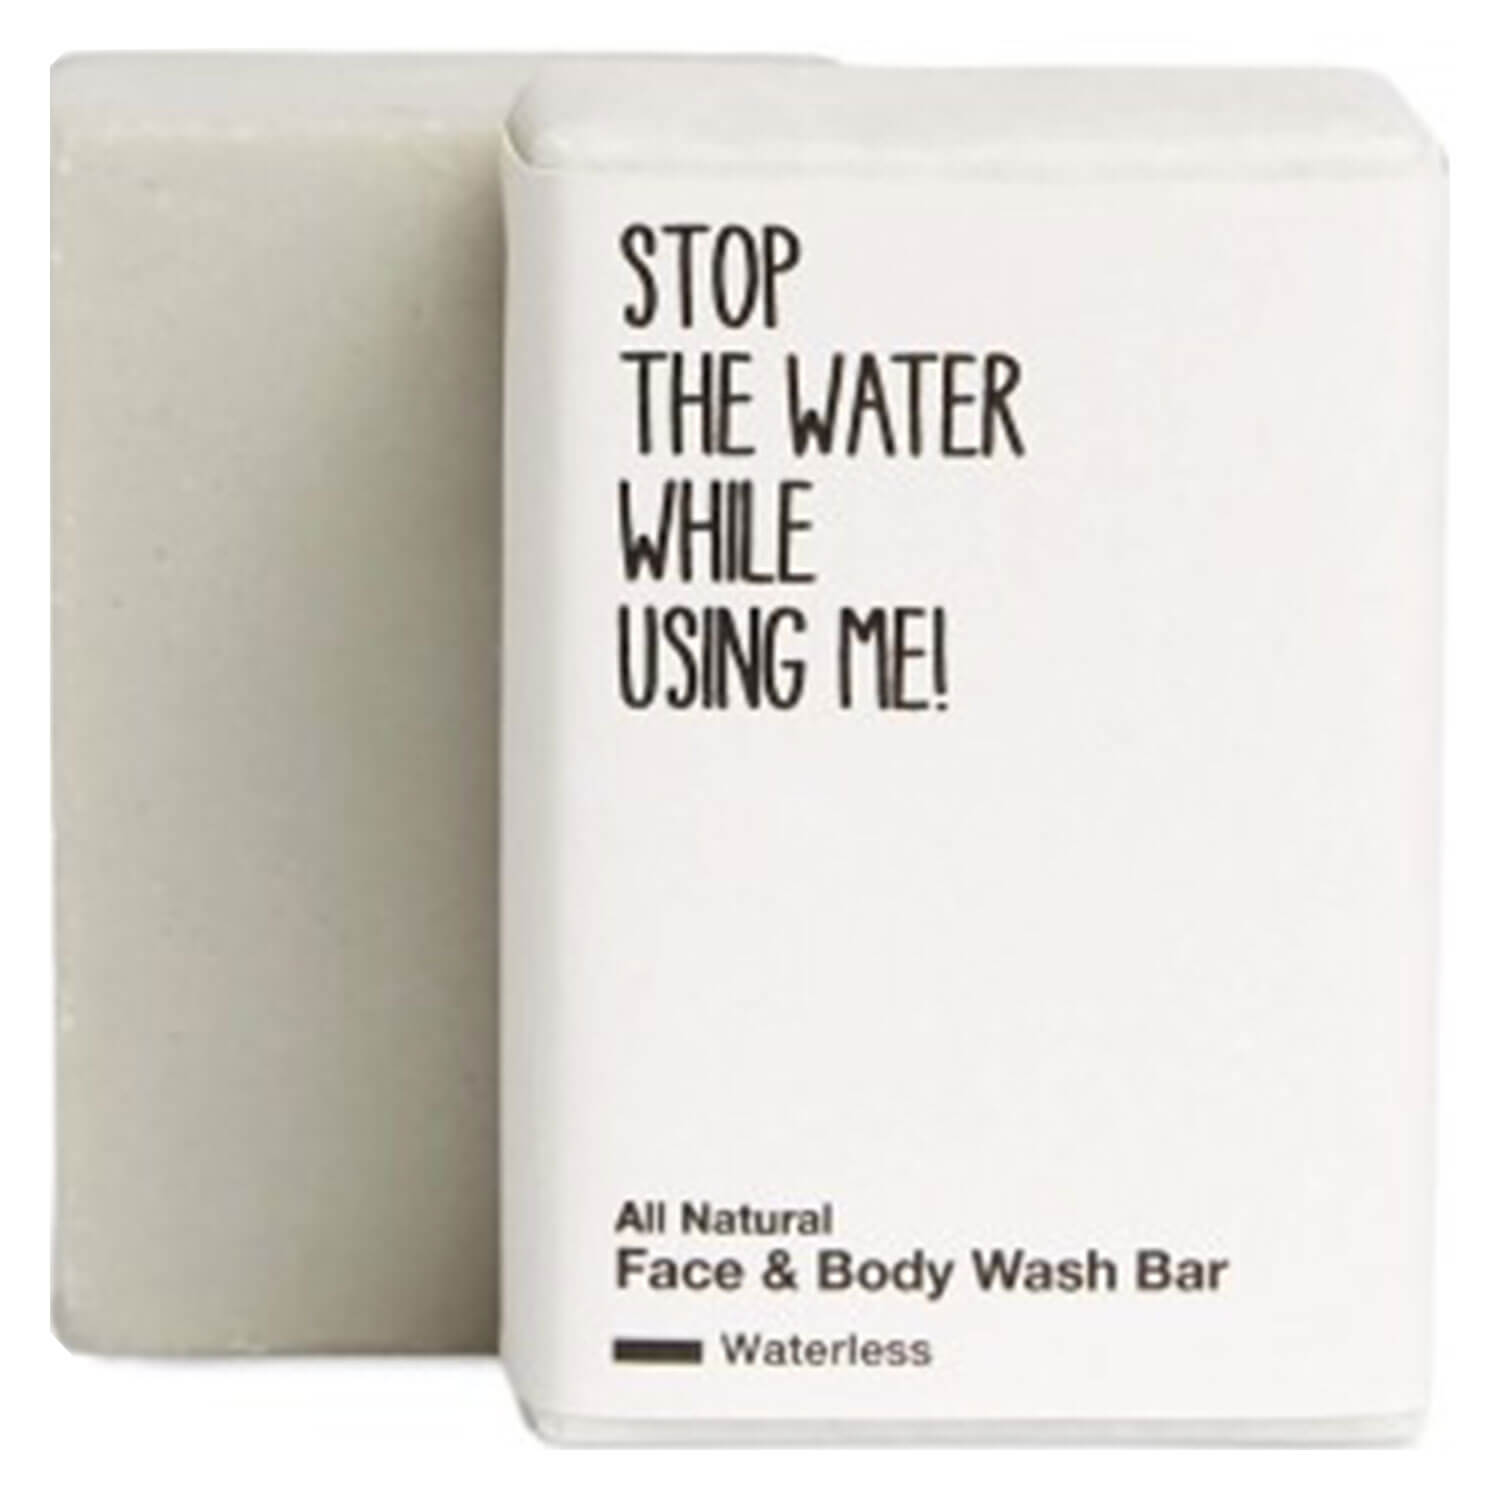 All Natural Body - Waterless Face & Body Wash Bar